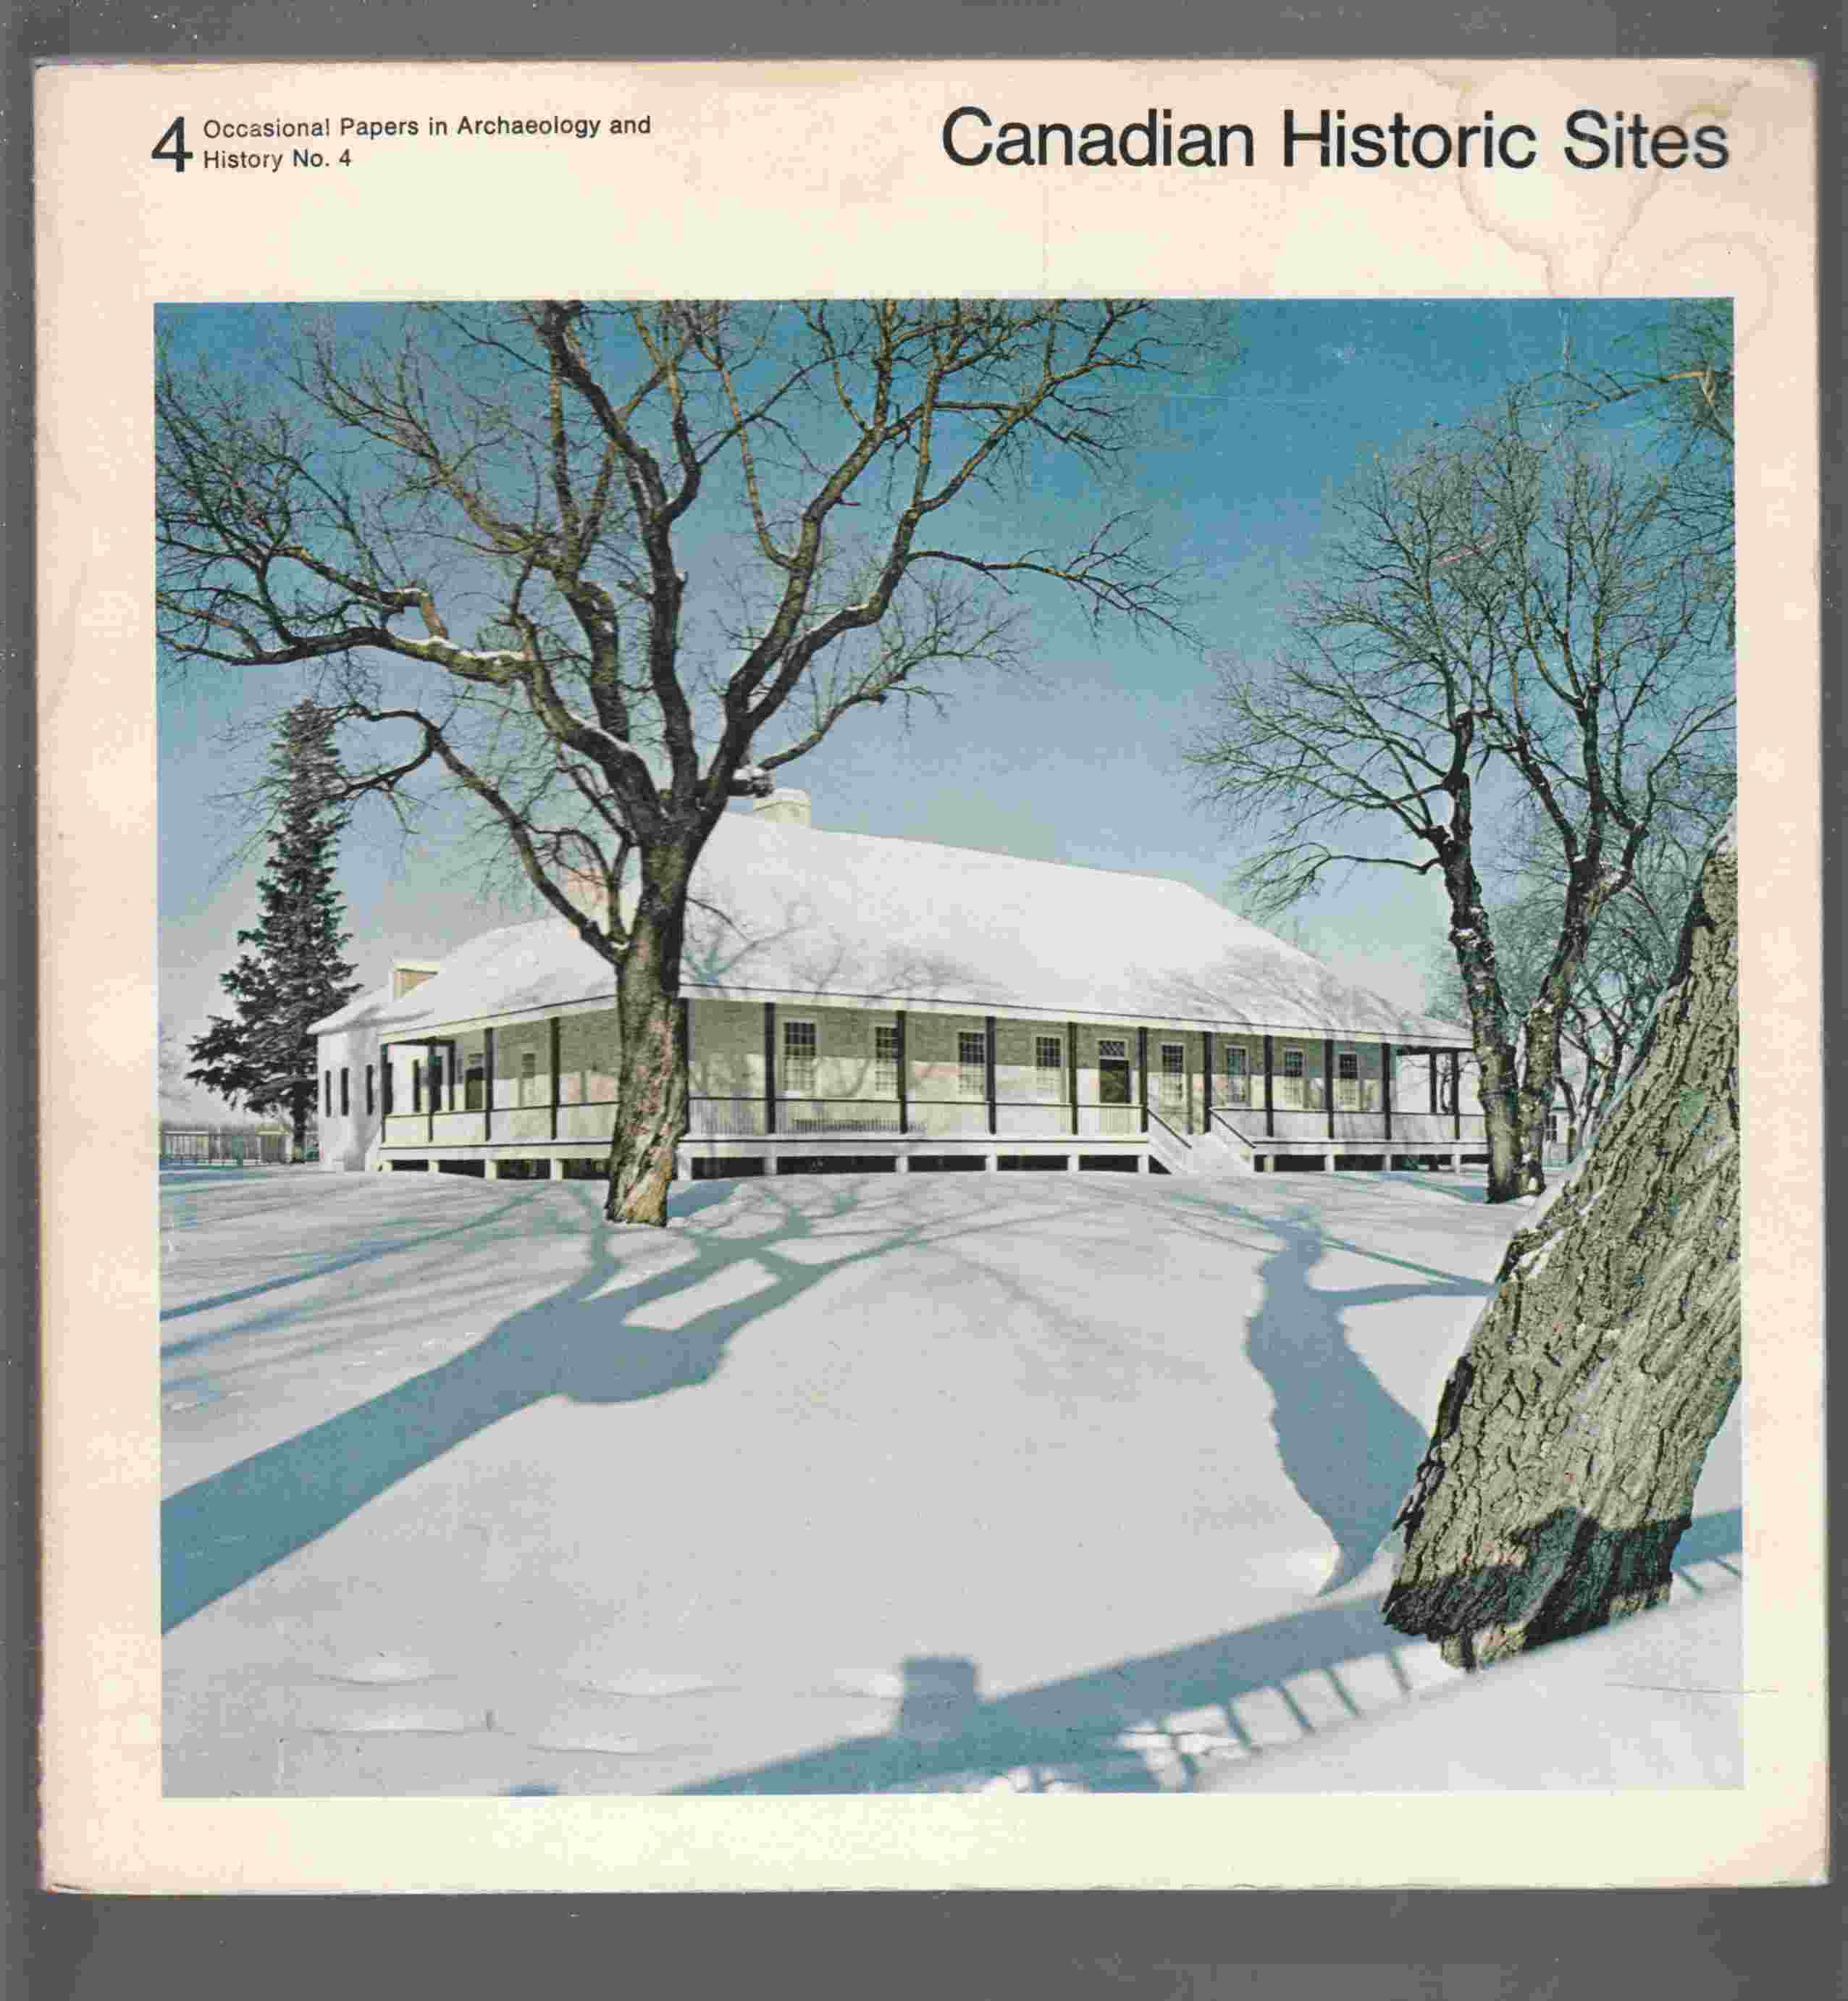 Image for Canadian Historic Sites Occasional Papers in Archaeology and History No. 4